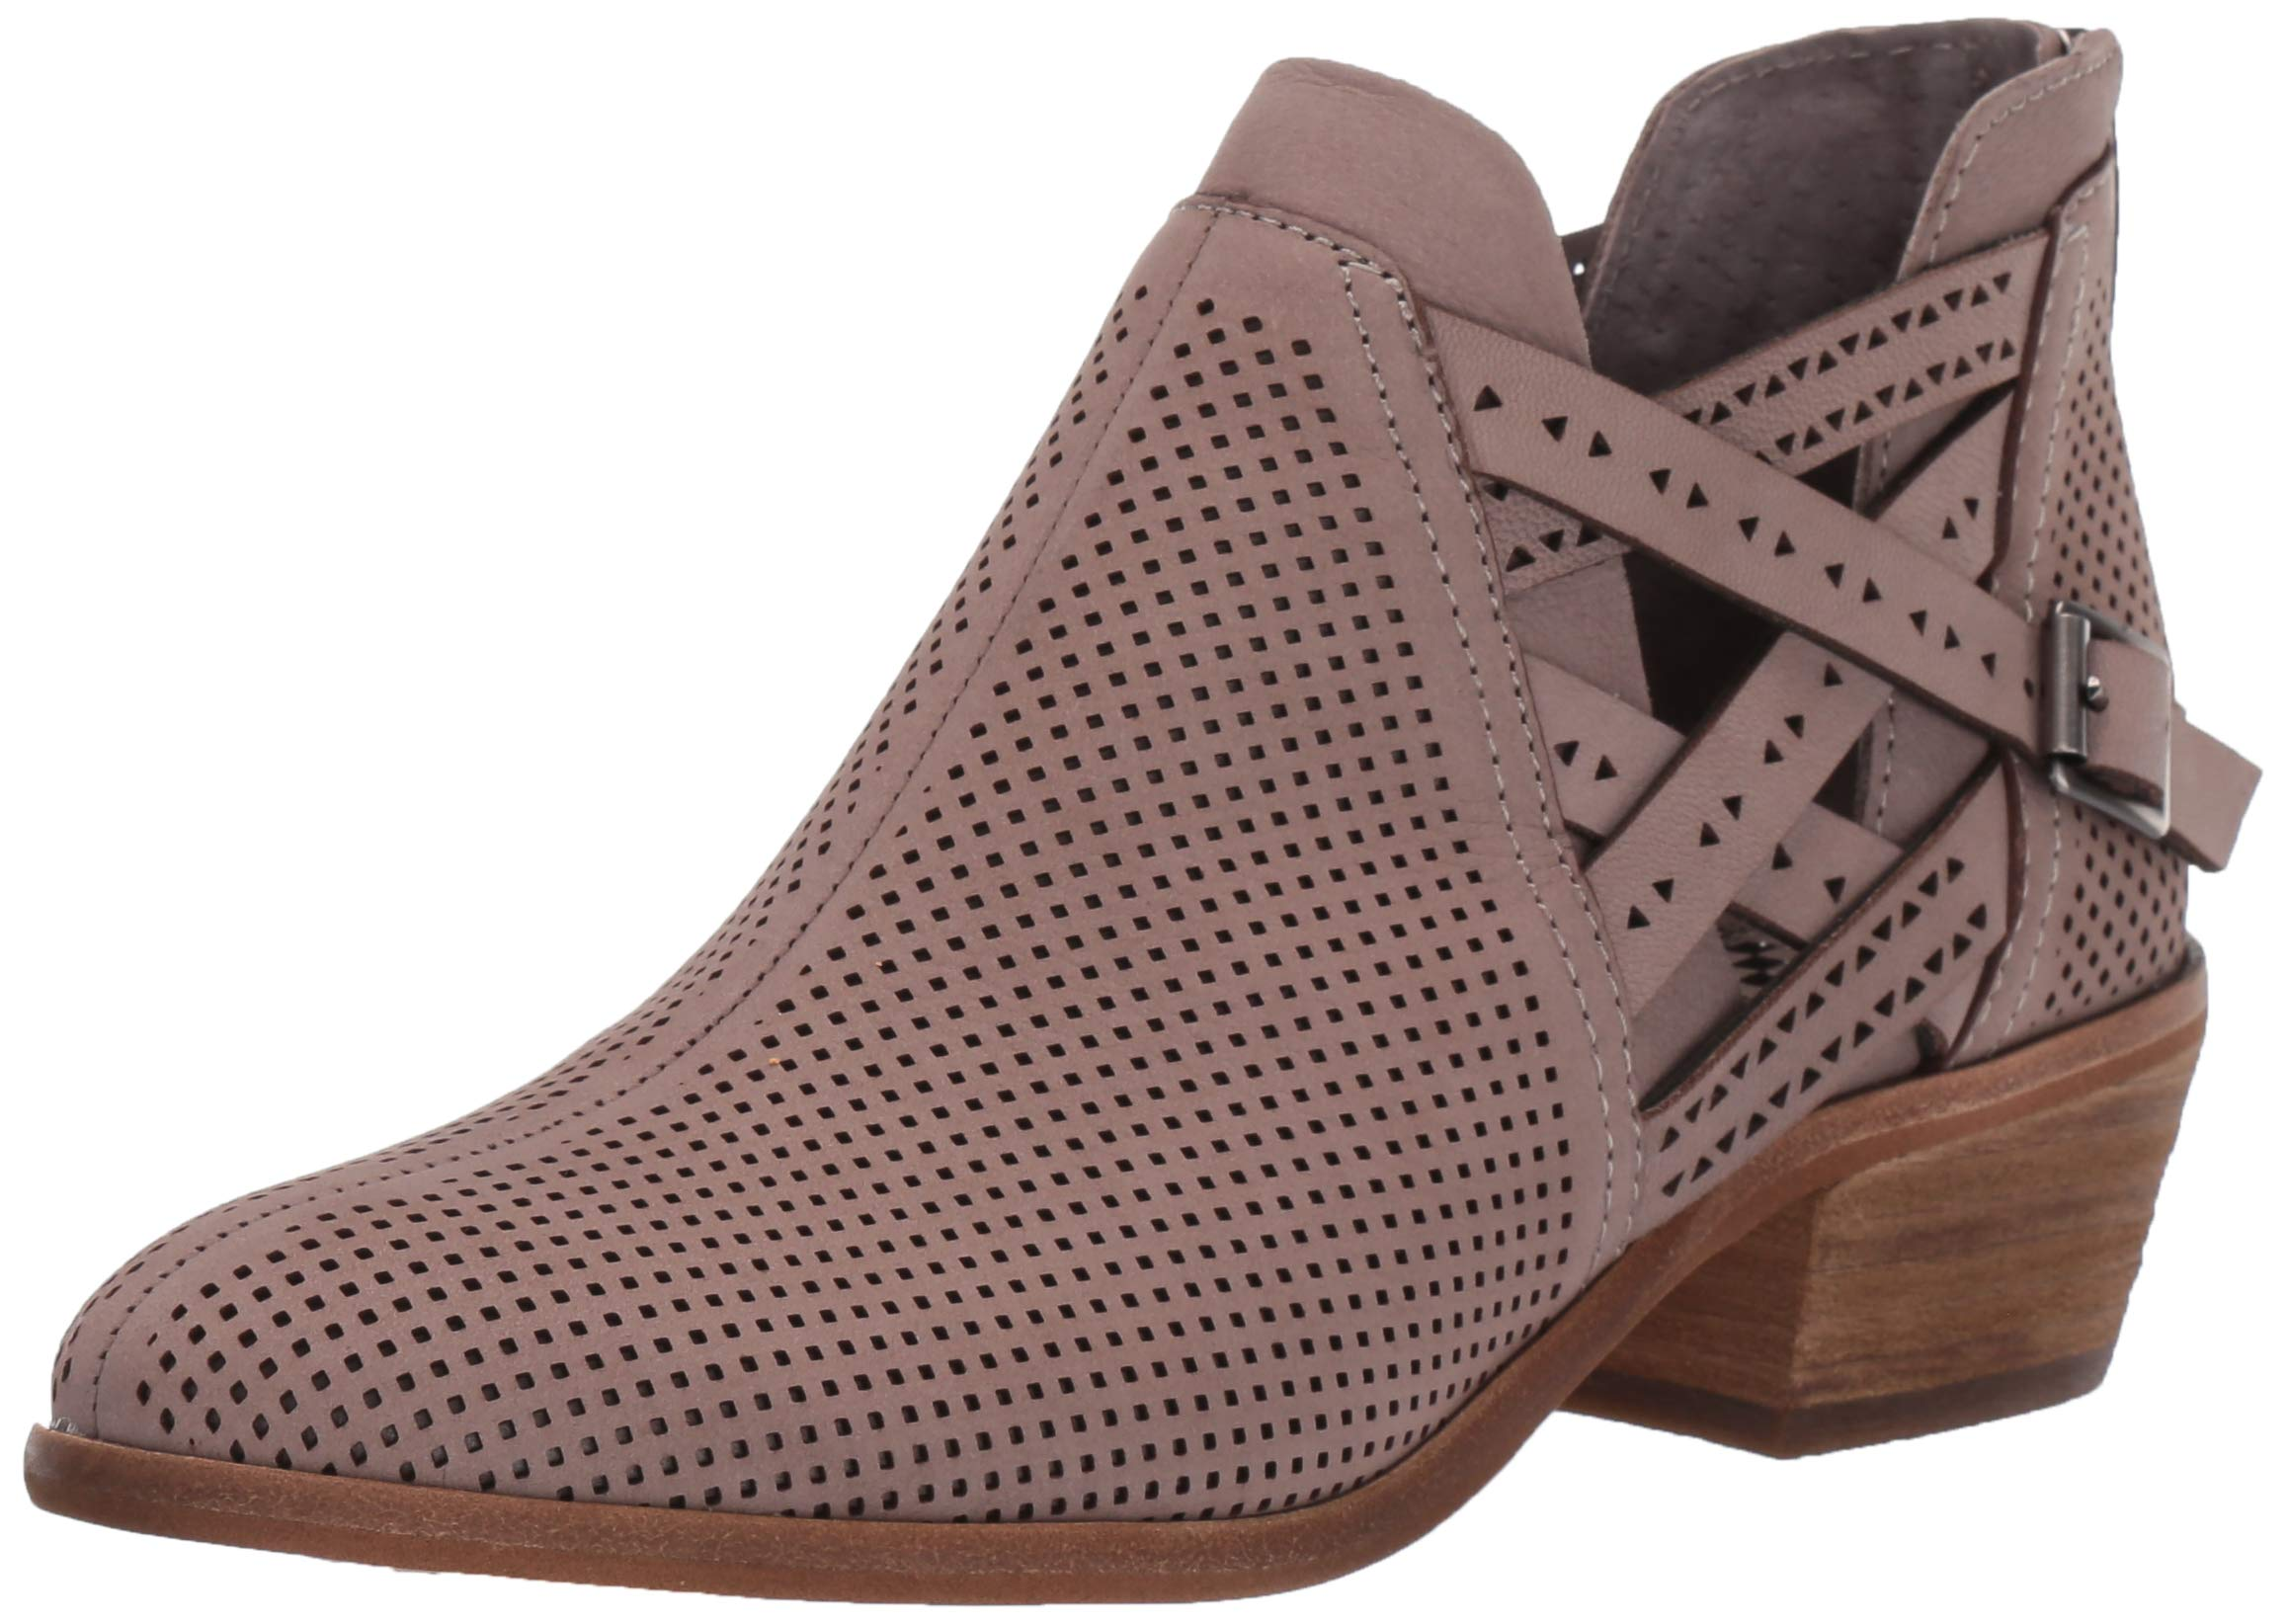 Vince Camuto Women's PRANIKA Ankle Boot, Elephant01, 10 Medium US by Vince Camuto